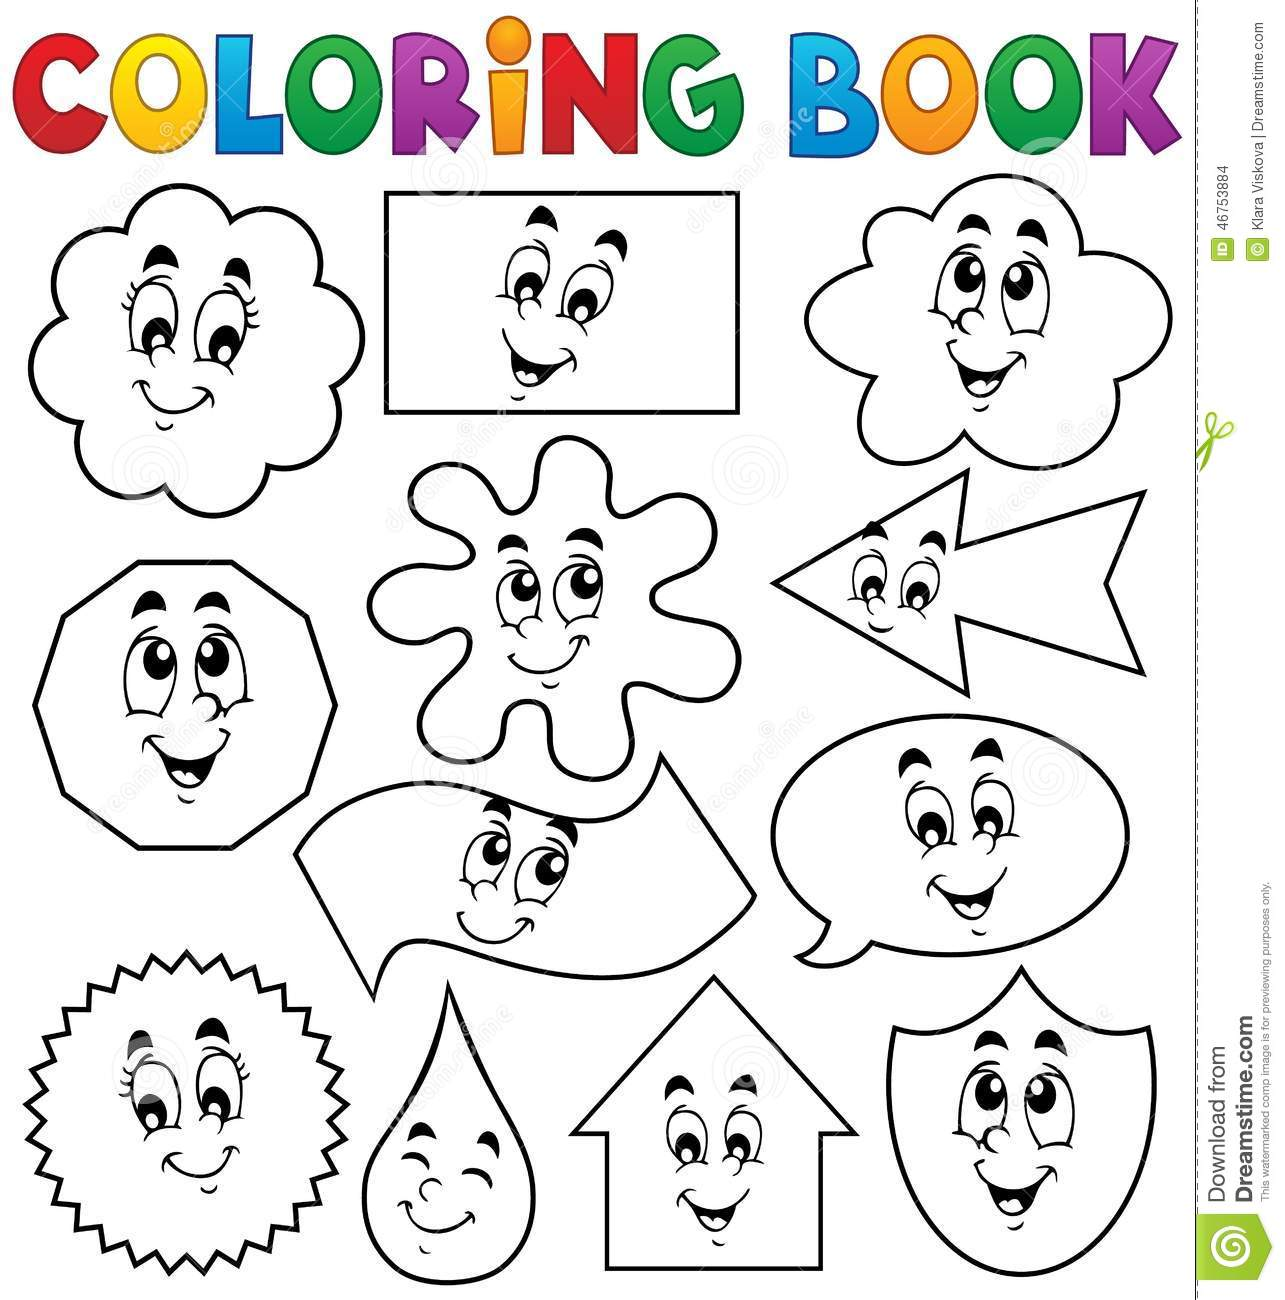 Coloring in shapes - Coloring Book Various Shapes 2